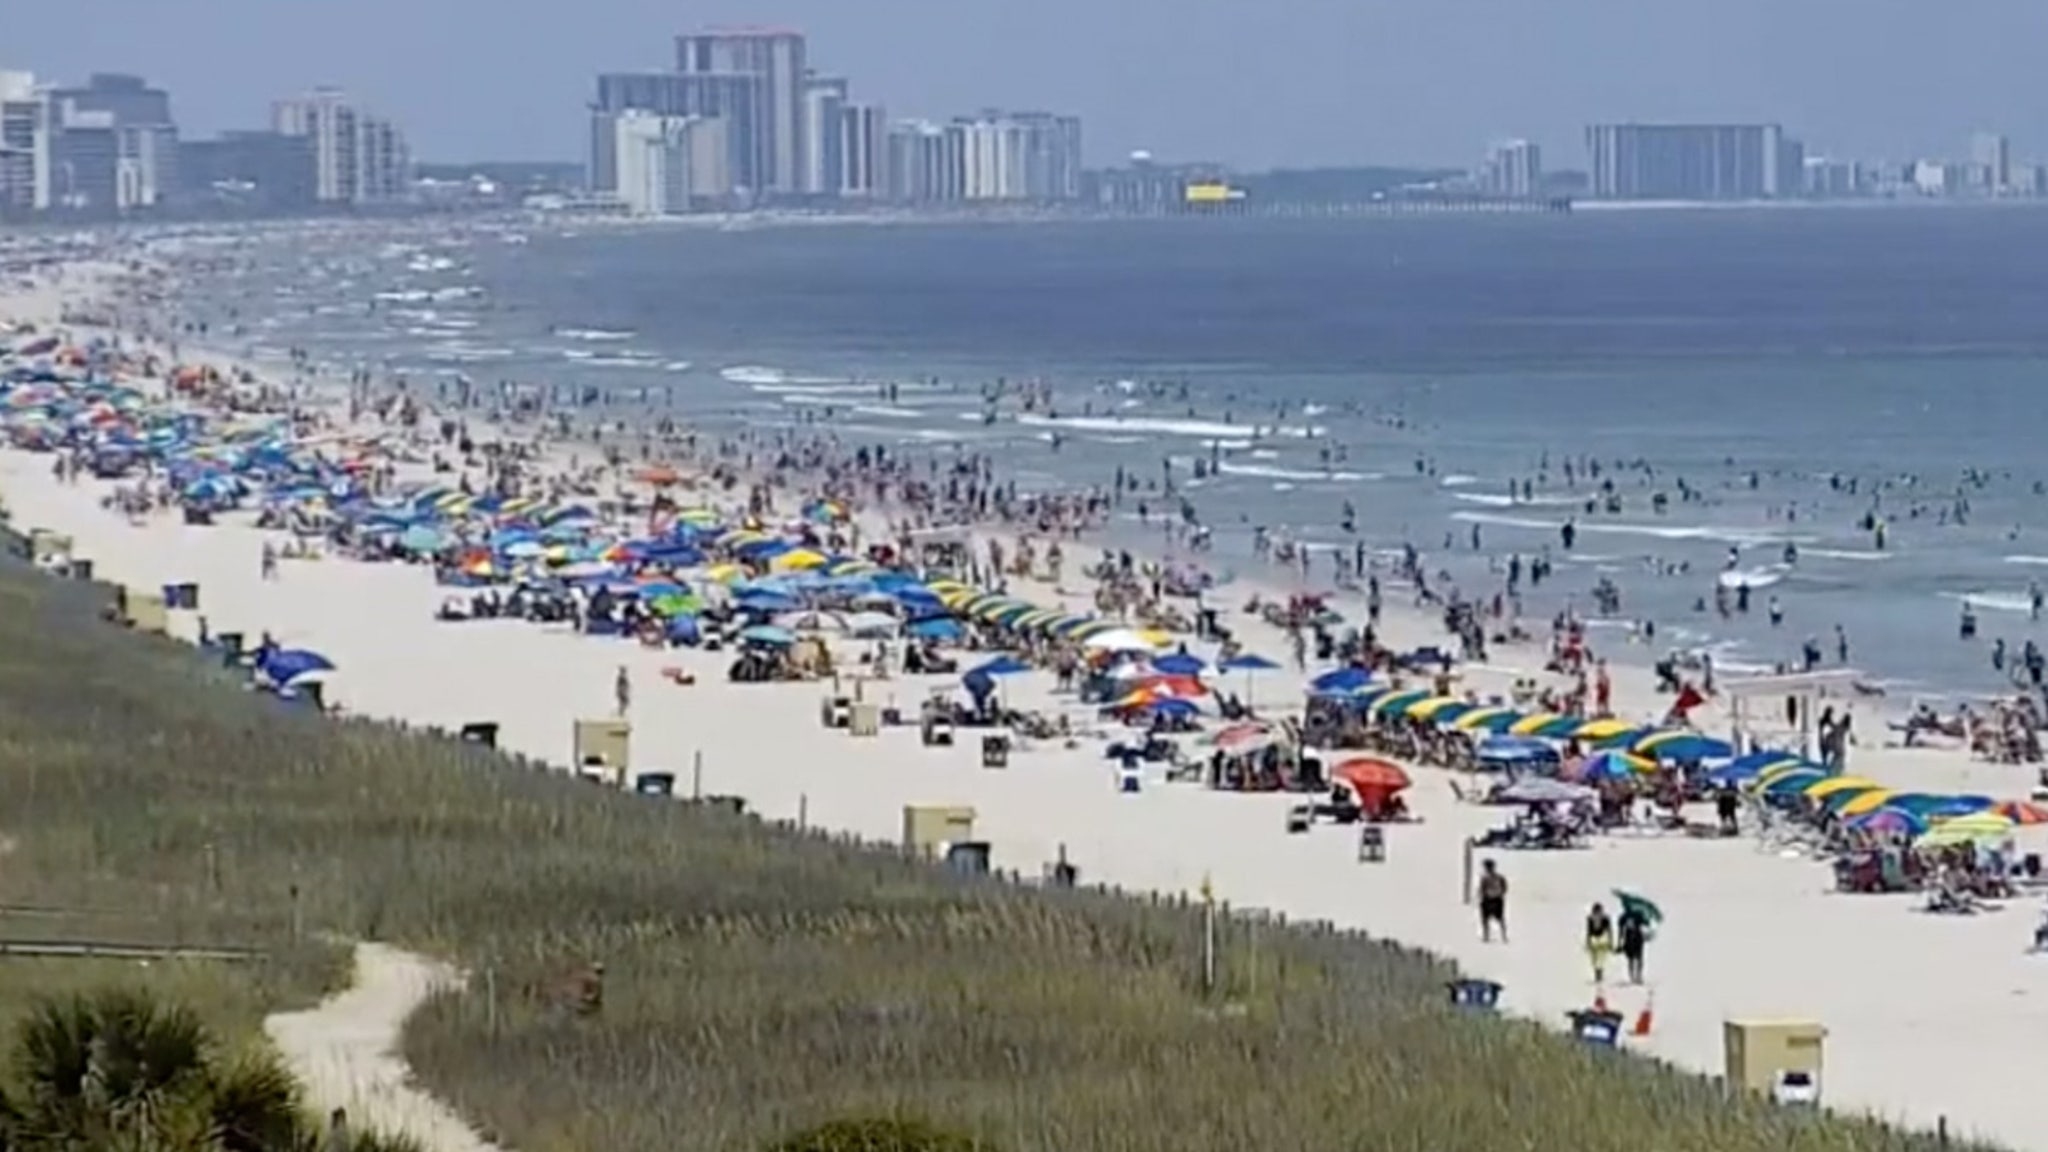 Myrtle Beach Packed as July 4th Weekend Kicks Off, COVID-19 Cases Rise